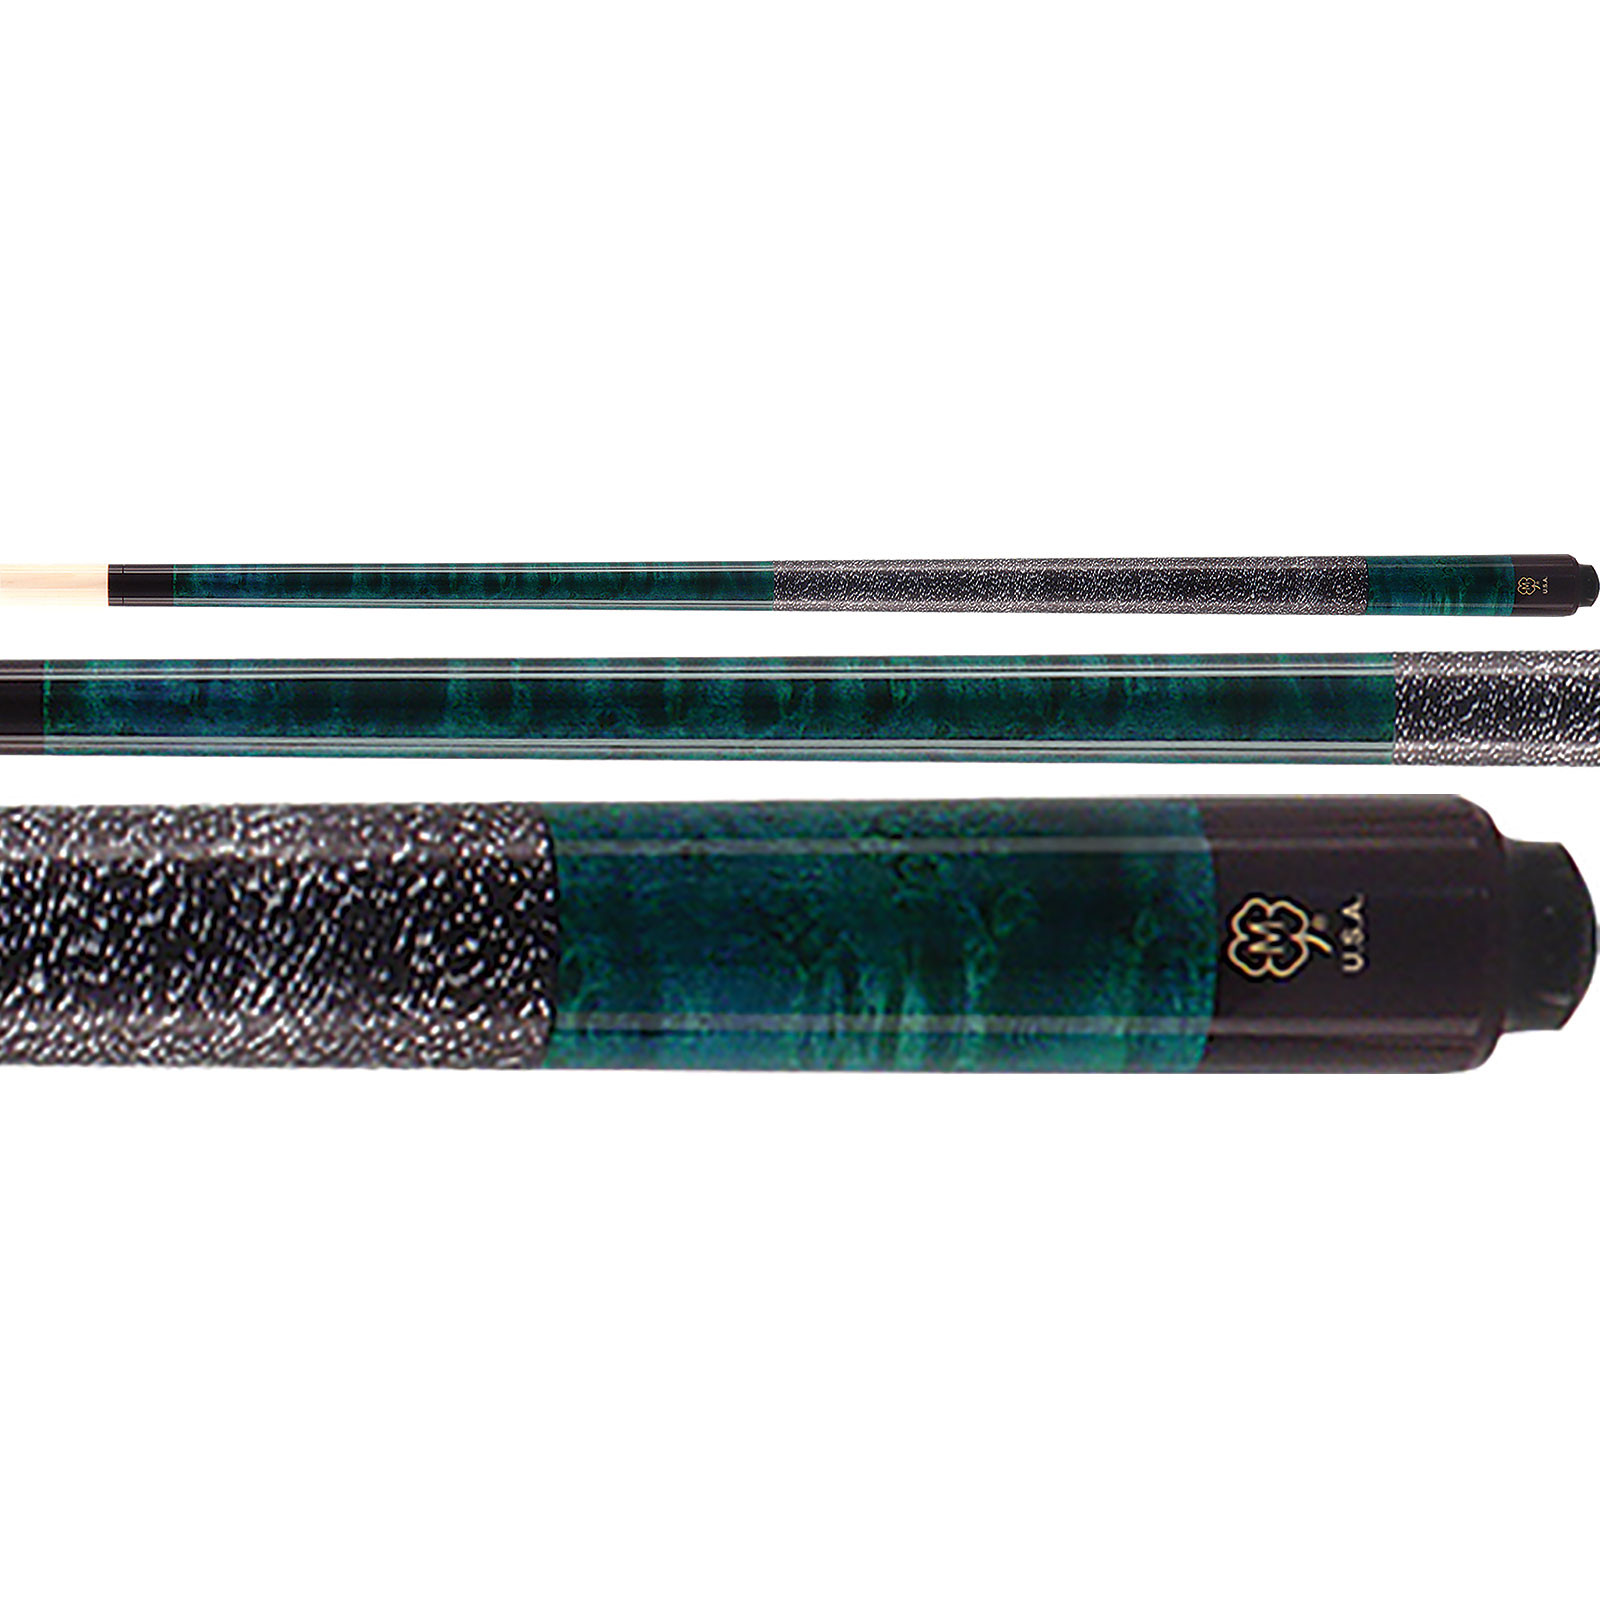 Mcdermott Gs08 Gs Series Teal Green Pool Cue